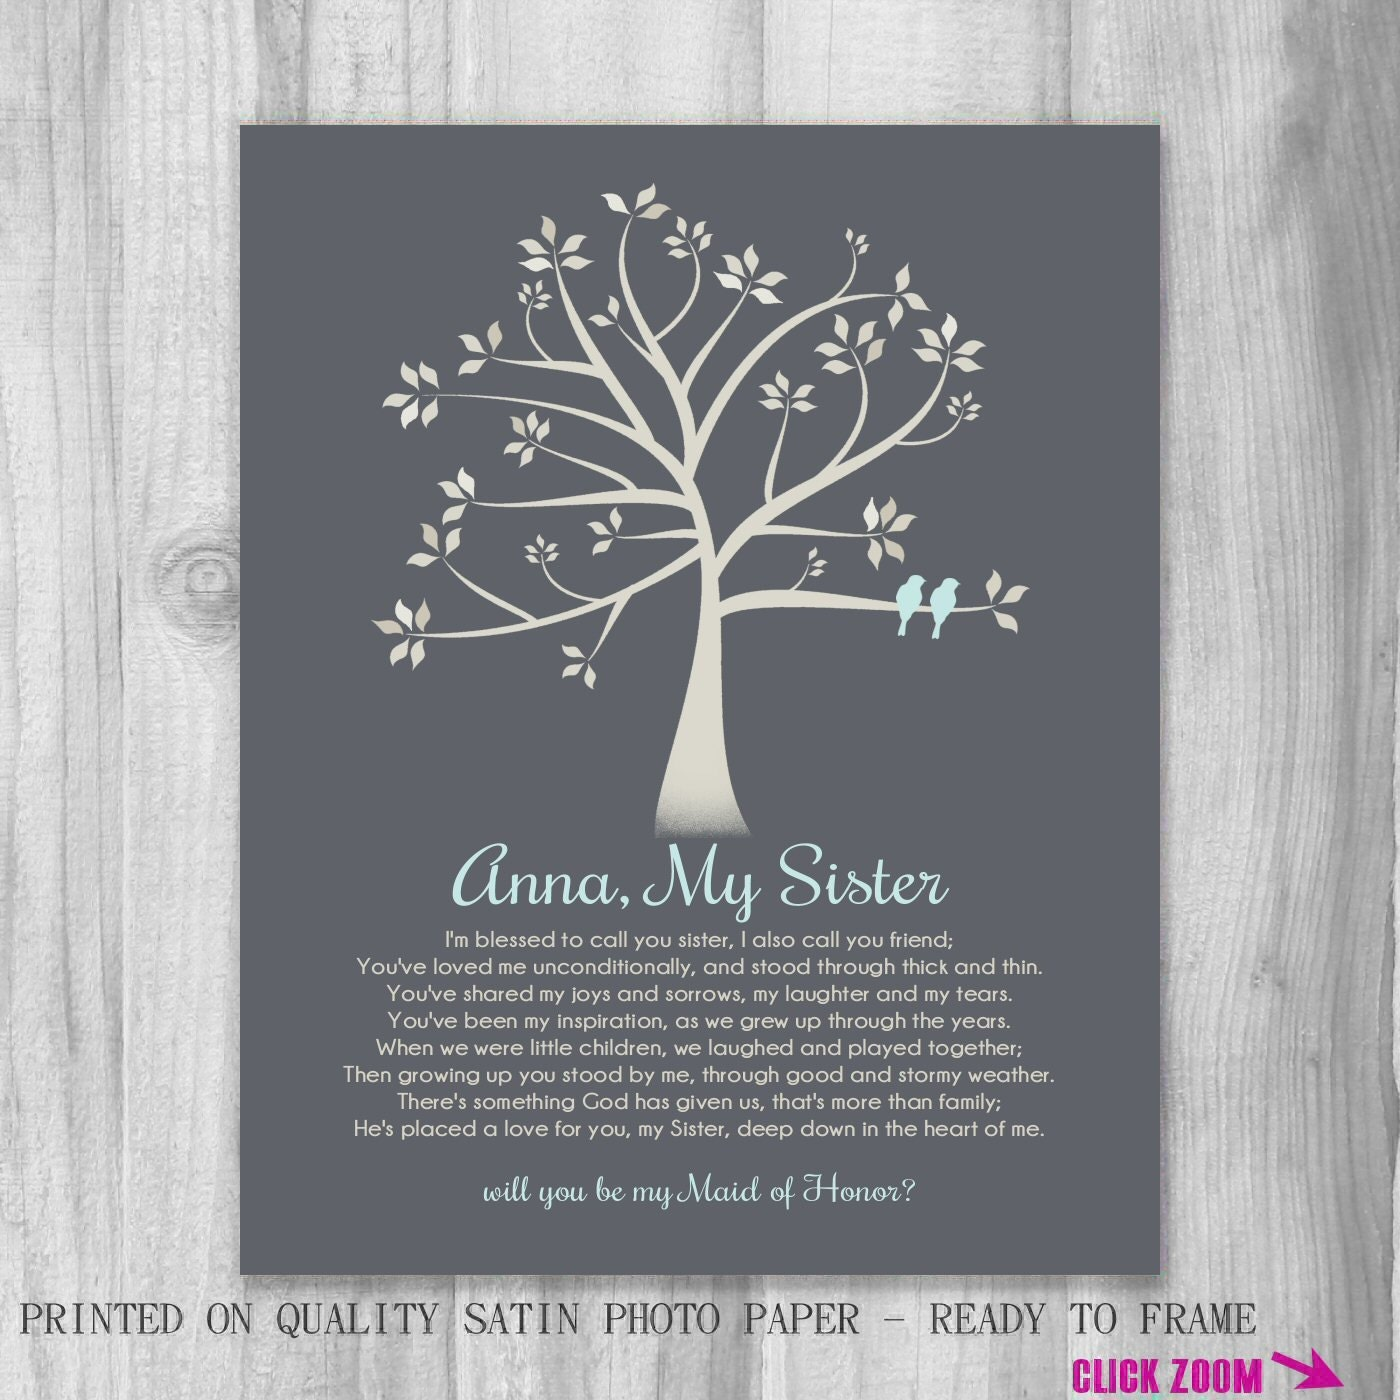 will you be my maid of honor poem sister